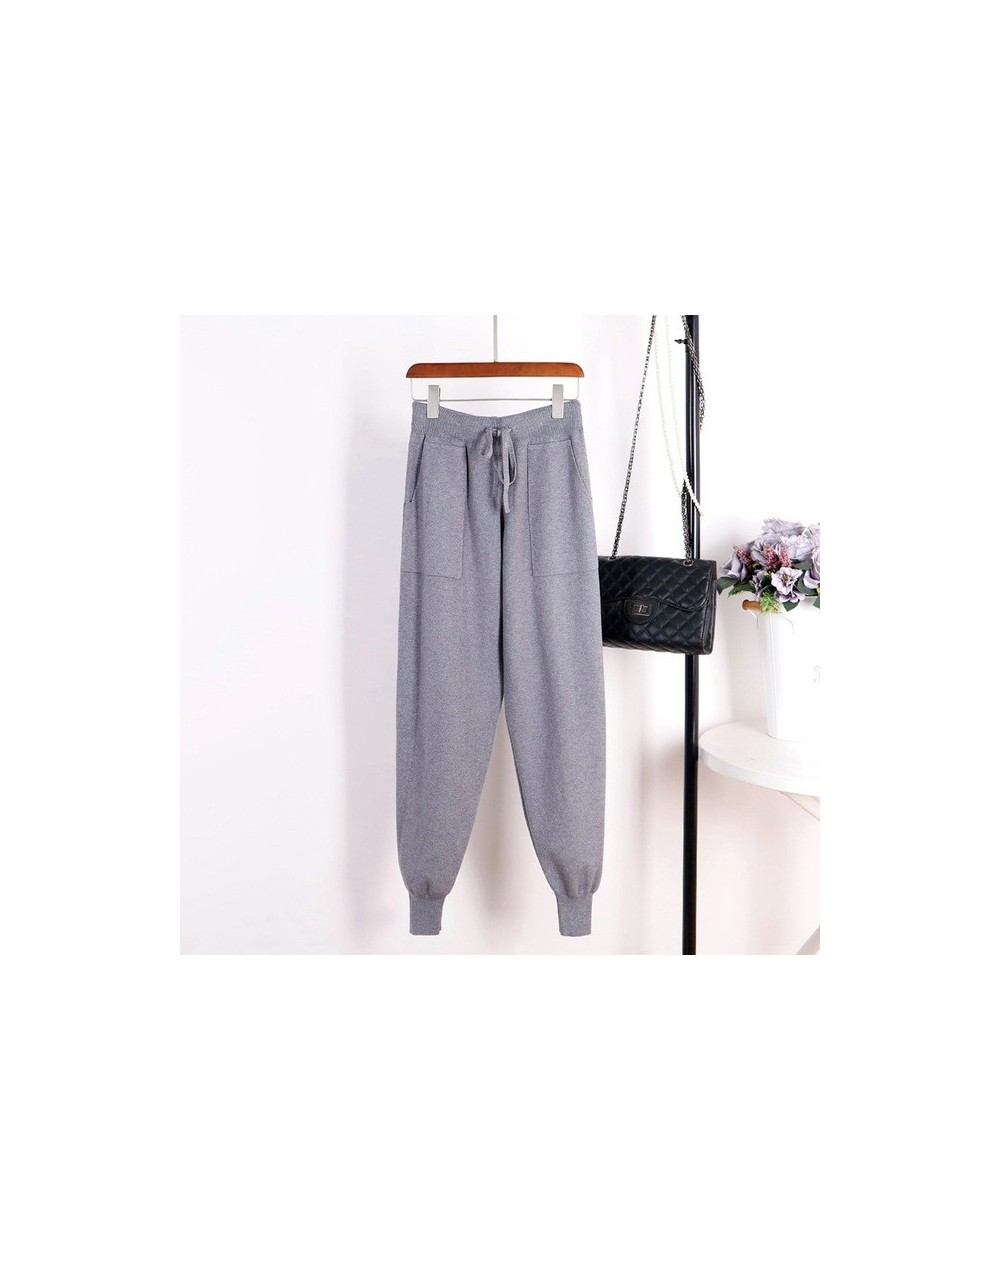 Women Casual Harem Pants Loose Trousers For Women Knitted Pants Autumn Winter Solid Color Sweater Trousers With Pockets - Gr...